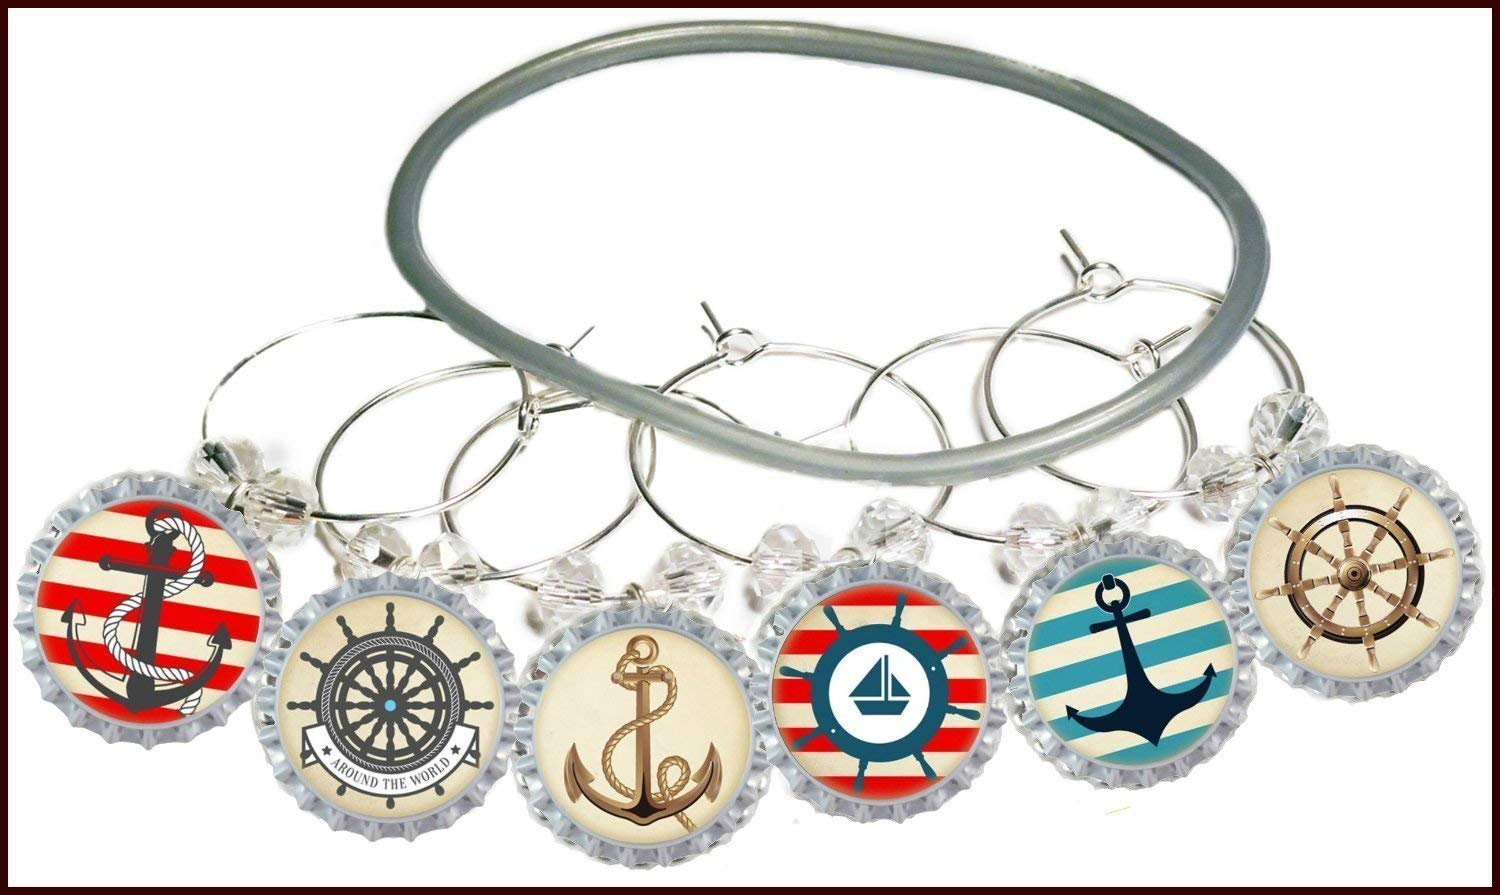 Nautical Wine Charms - Independence Day Glass Tag Identifiers, Nautical Party Supply Glass Markers - Anchor, Boat, 8 wine charms